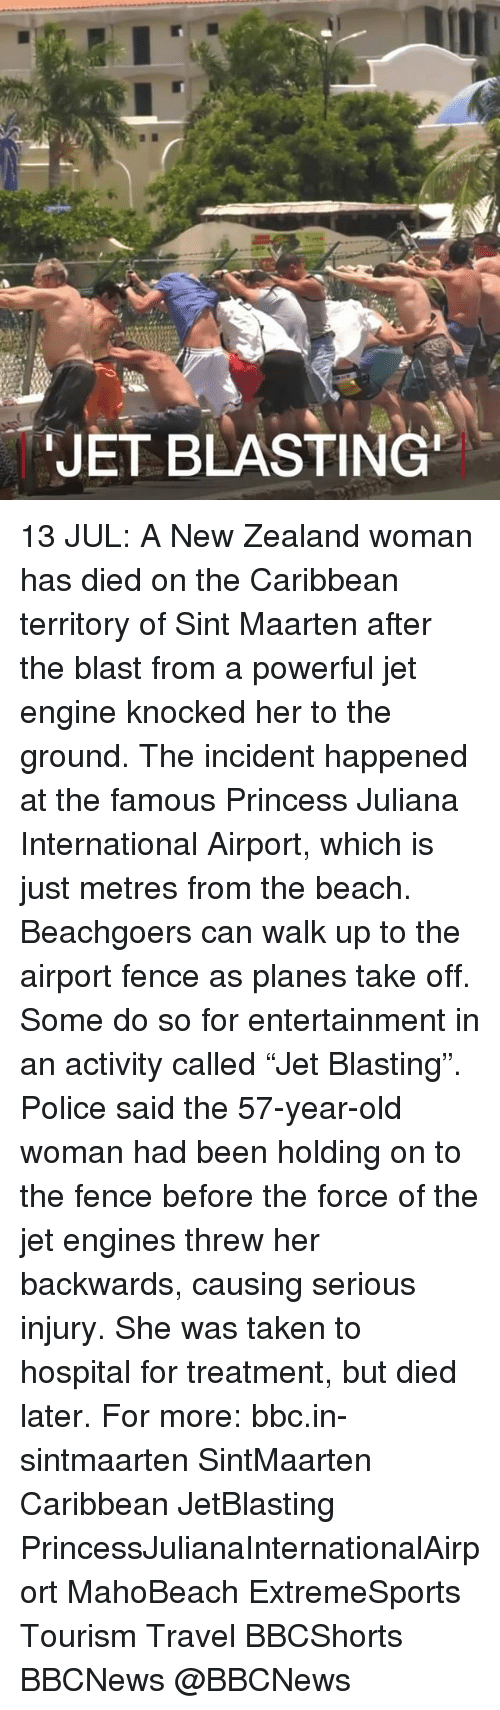 """Memes, Old Woman, and Police: JET BLASTING 13 JUL: A New Zealand woman has died on the Caribbean territory of Sint Maarten after the blast from a powerful jet engine knocked her to the ground. The incident happened at the famous Princess Juliana International Airport, which is just metres from the beach. Beachgoers can walk up to the airport fence as planes take off. Some do so for entertainment in an activity called """"Jet Blasting"""". Police said the 57-year-old woman had been holding on to the fence before the force of the jet engines threw her backwards, causing serious injury. She was taken to hospital for treatment, but died later. For more: bbc.in-sintmaarten SintMaarten Caribbean JetBlasting PrincessJulianaInternationalAirport MahoBeach ExtremeSports Tourism Travel BBCShorts BBCNews @BBCNews"""